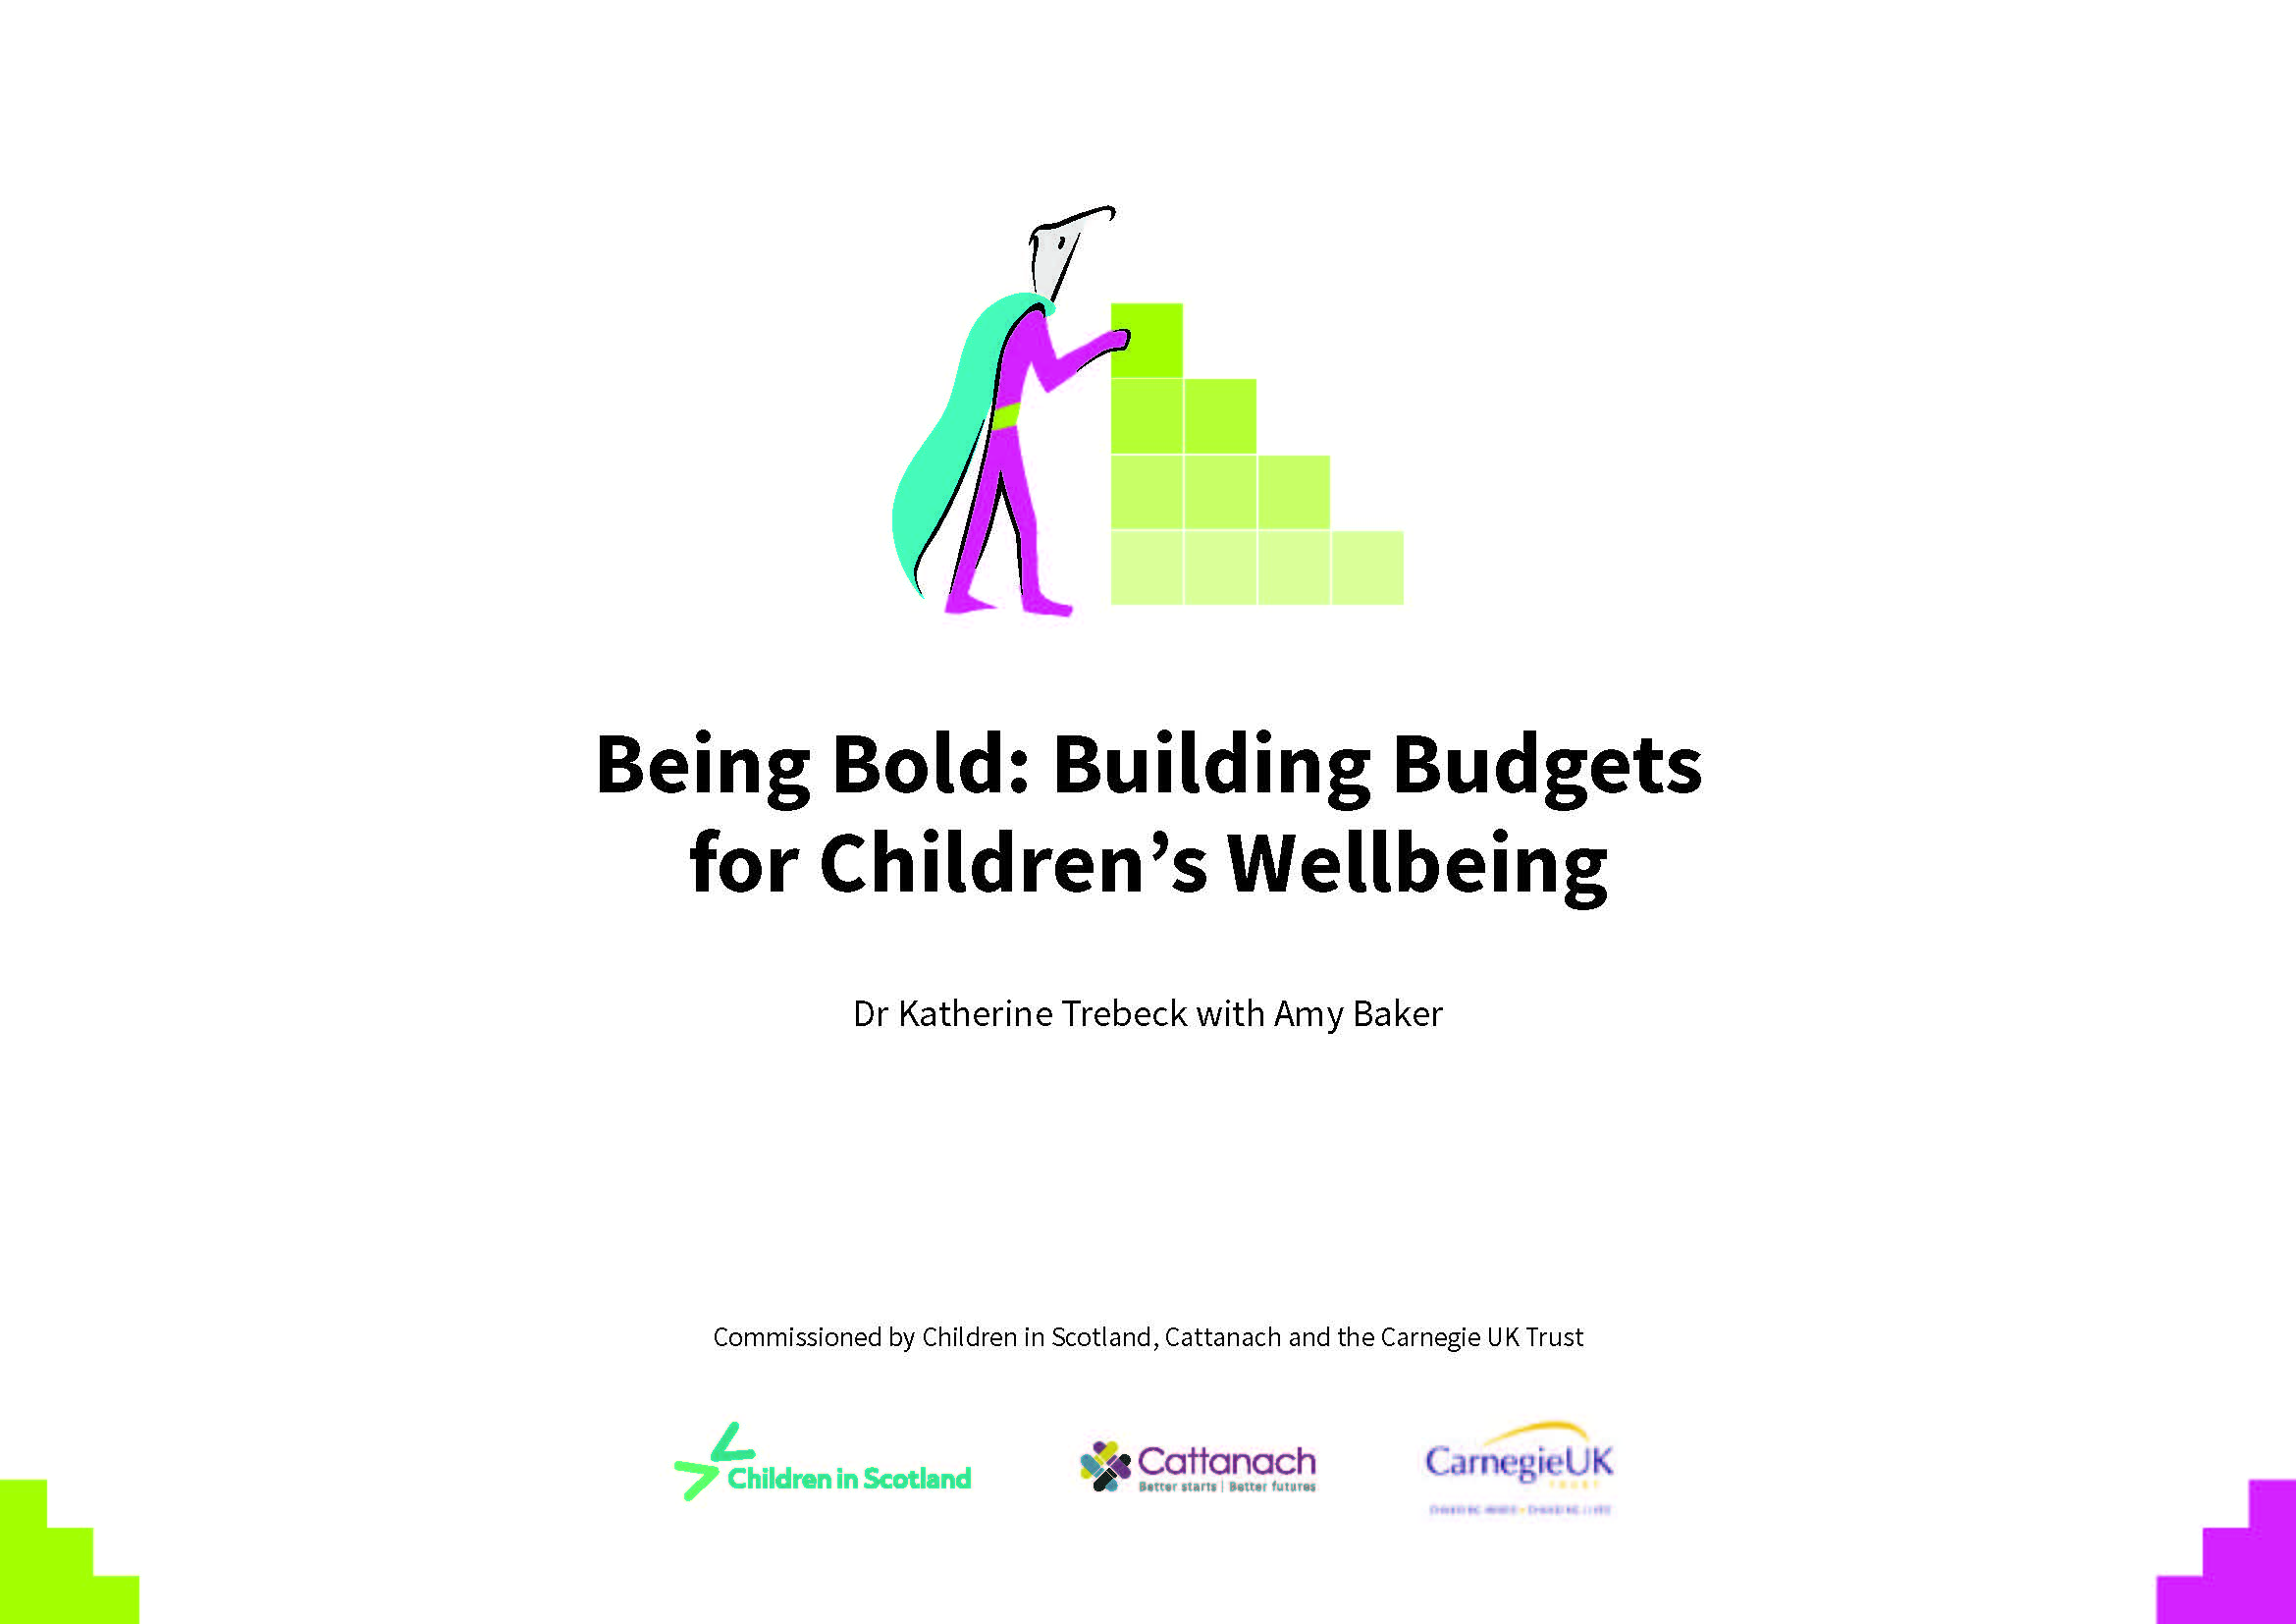 Being Bold: Building Budgets for Children?s Wellbeing